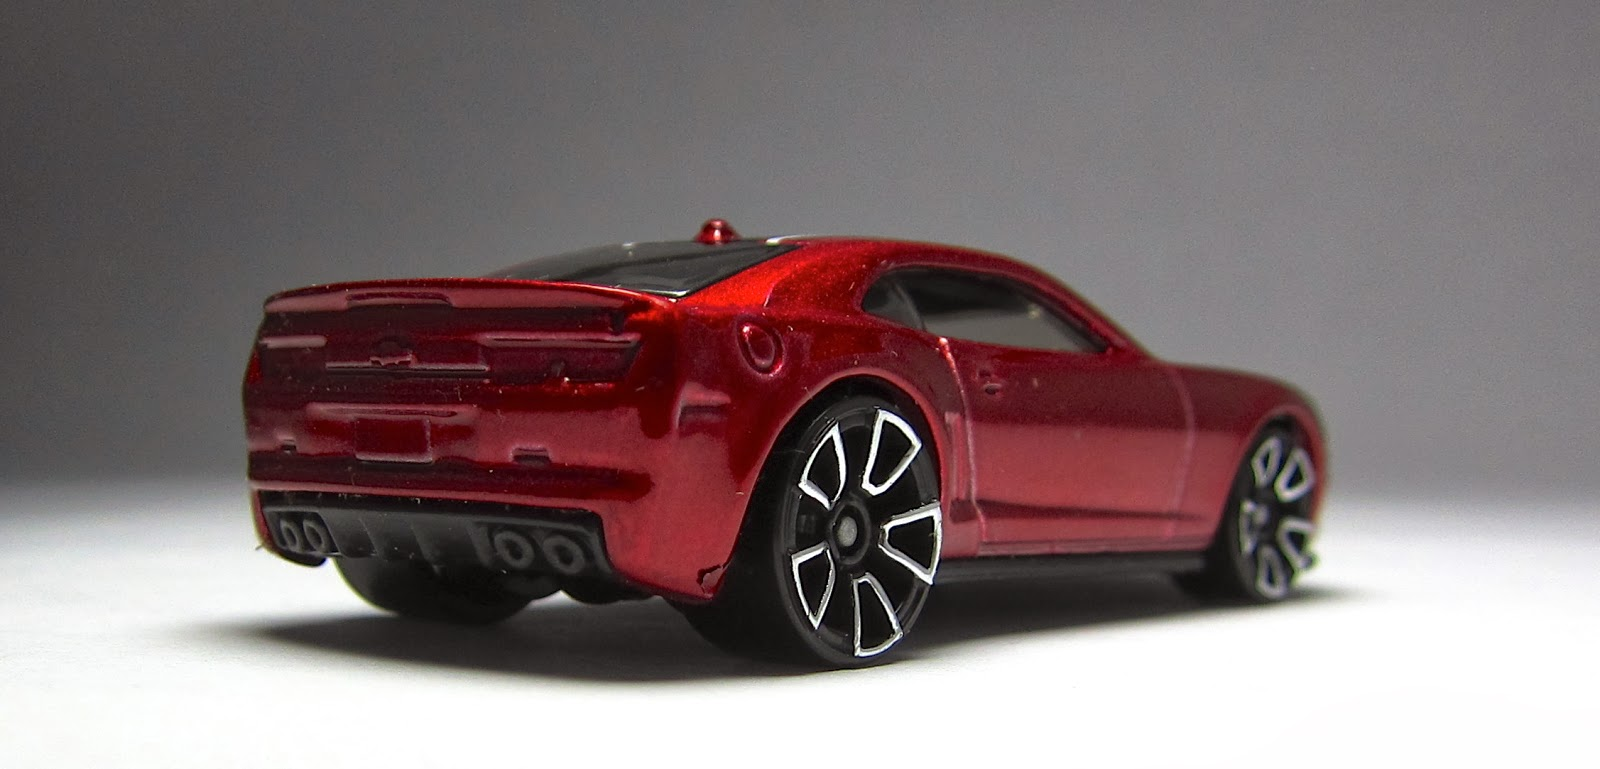 First Look 2014 Hot Wheels Chevy Camaro Special Edition